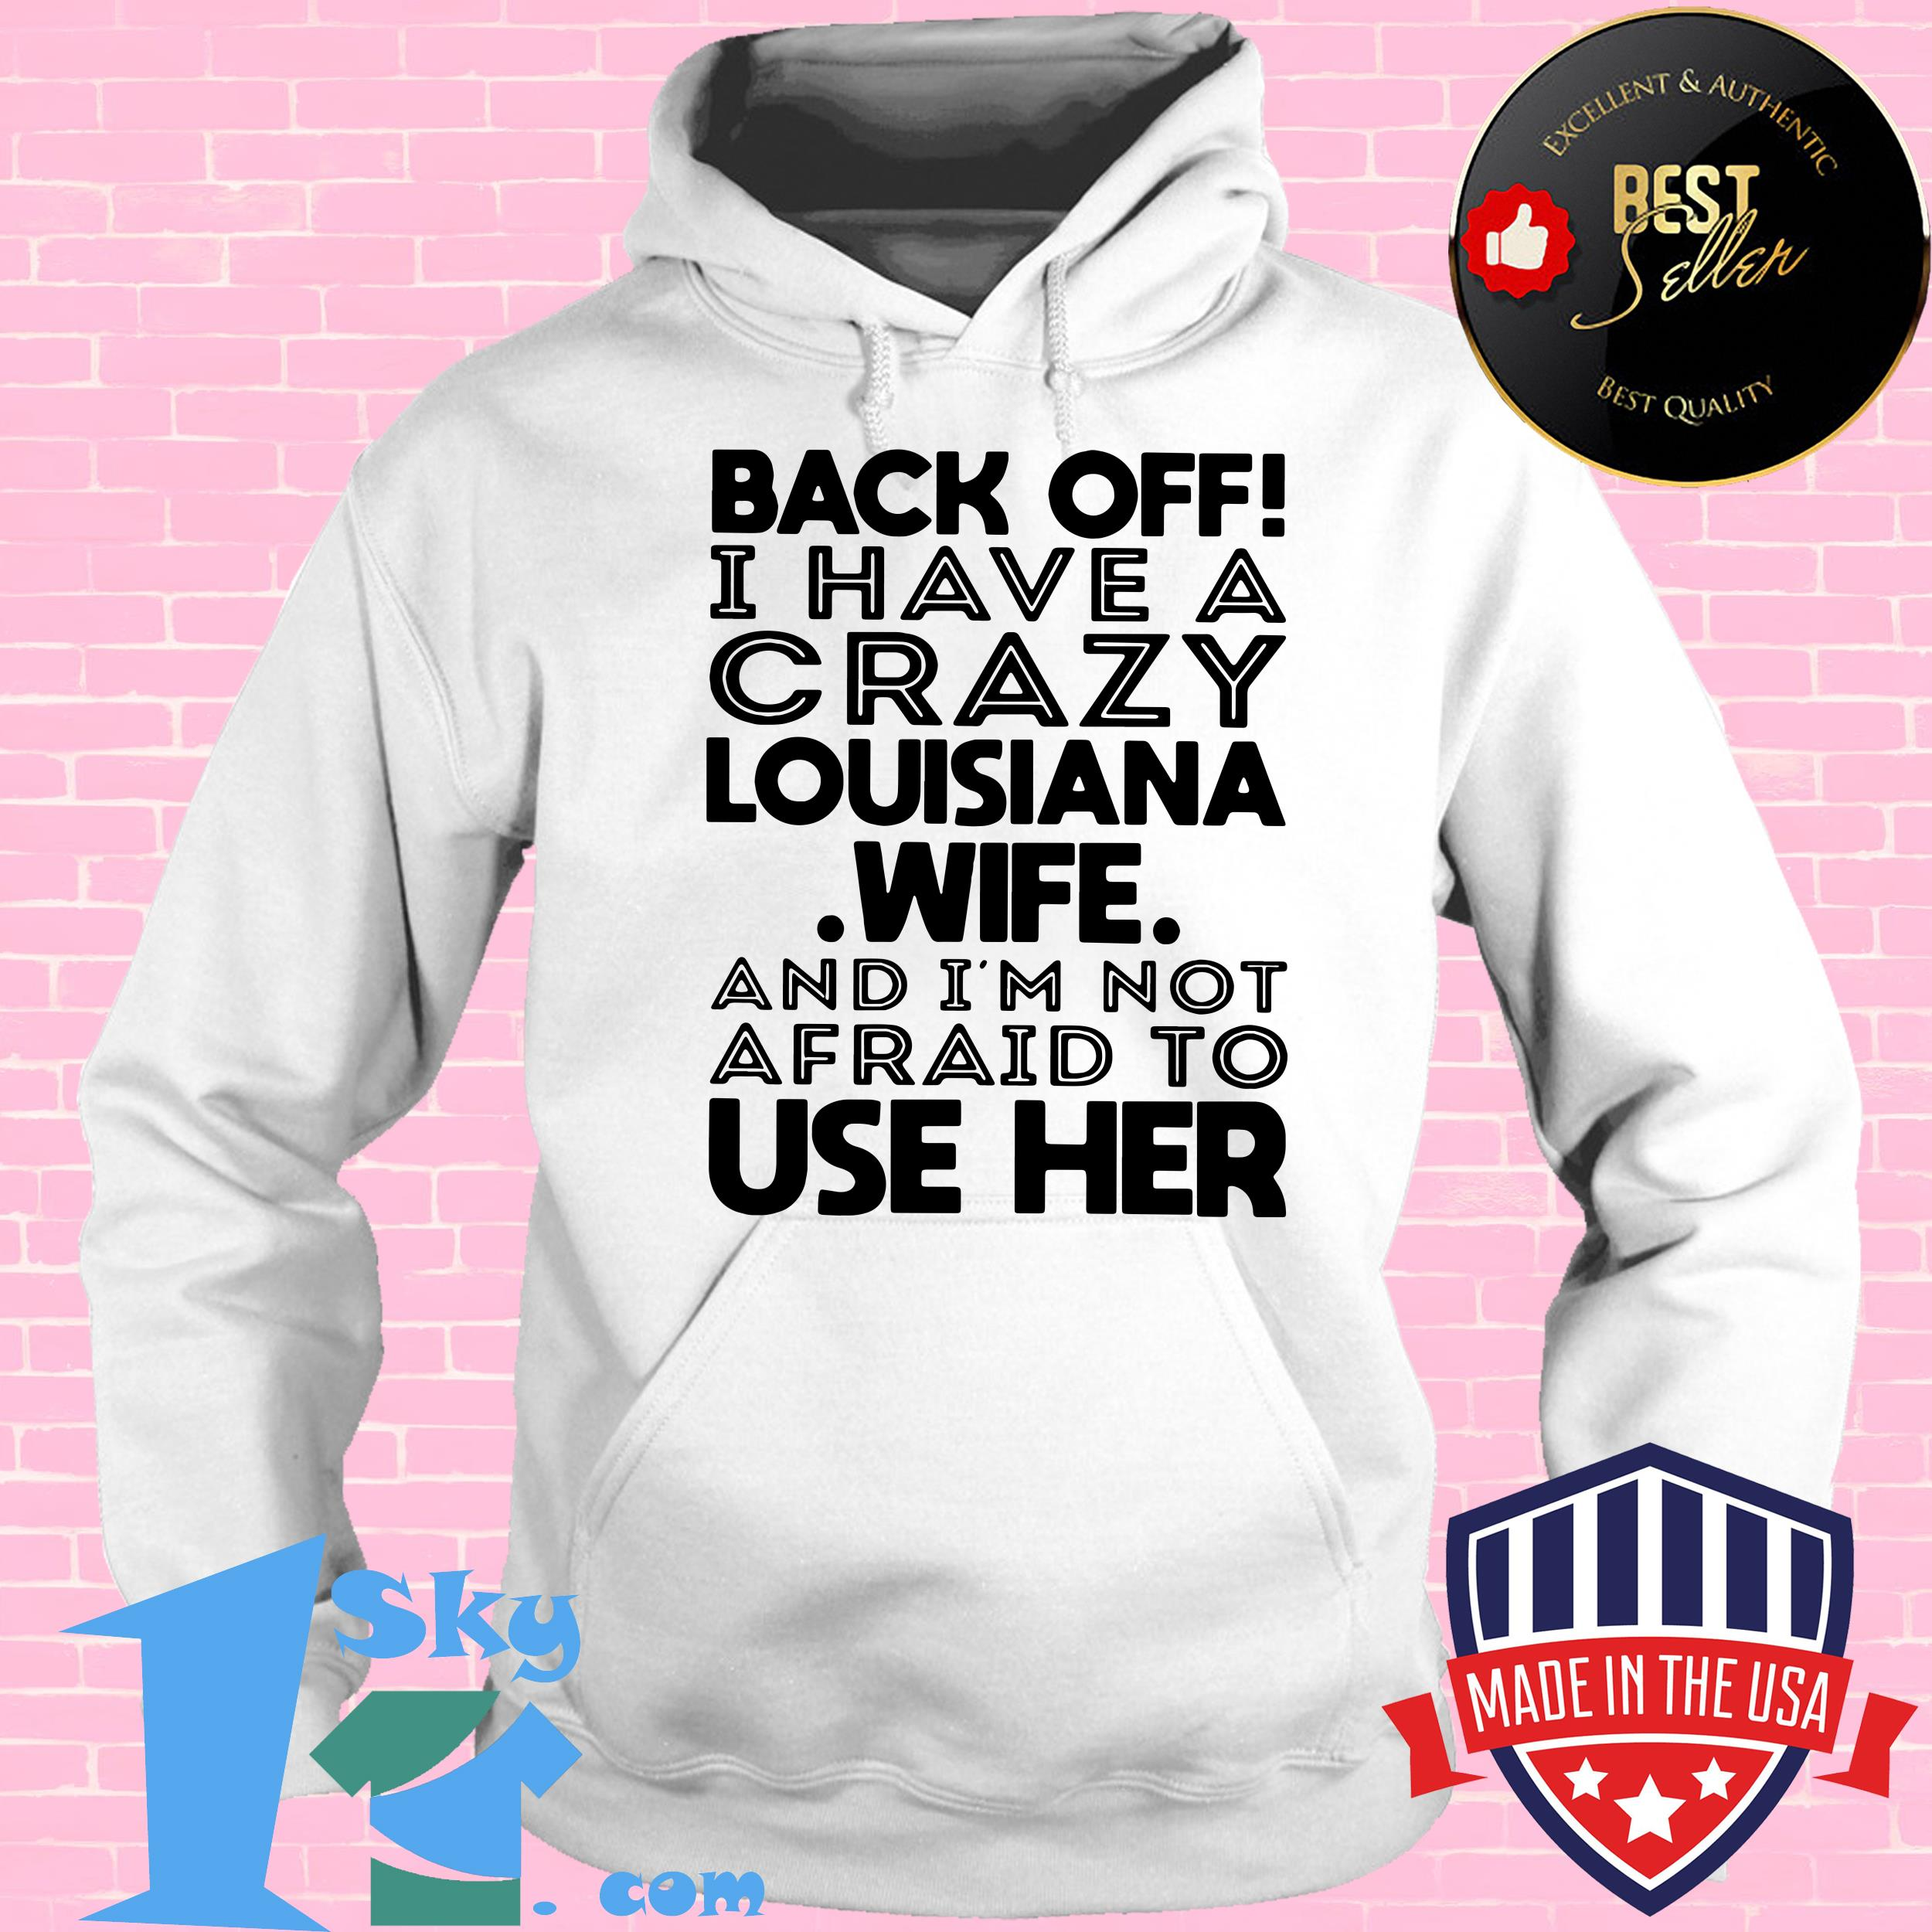 back off i have a crazy louisiana wife and i am not afraid to use her hoodie - Back Off I Have A Crazy Louisiana Wife And I Am Not Afraid To Use Her shirt